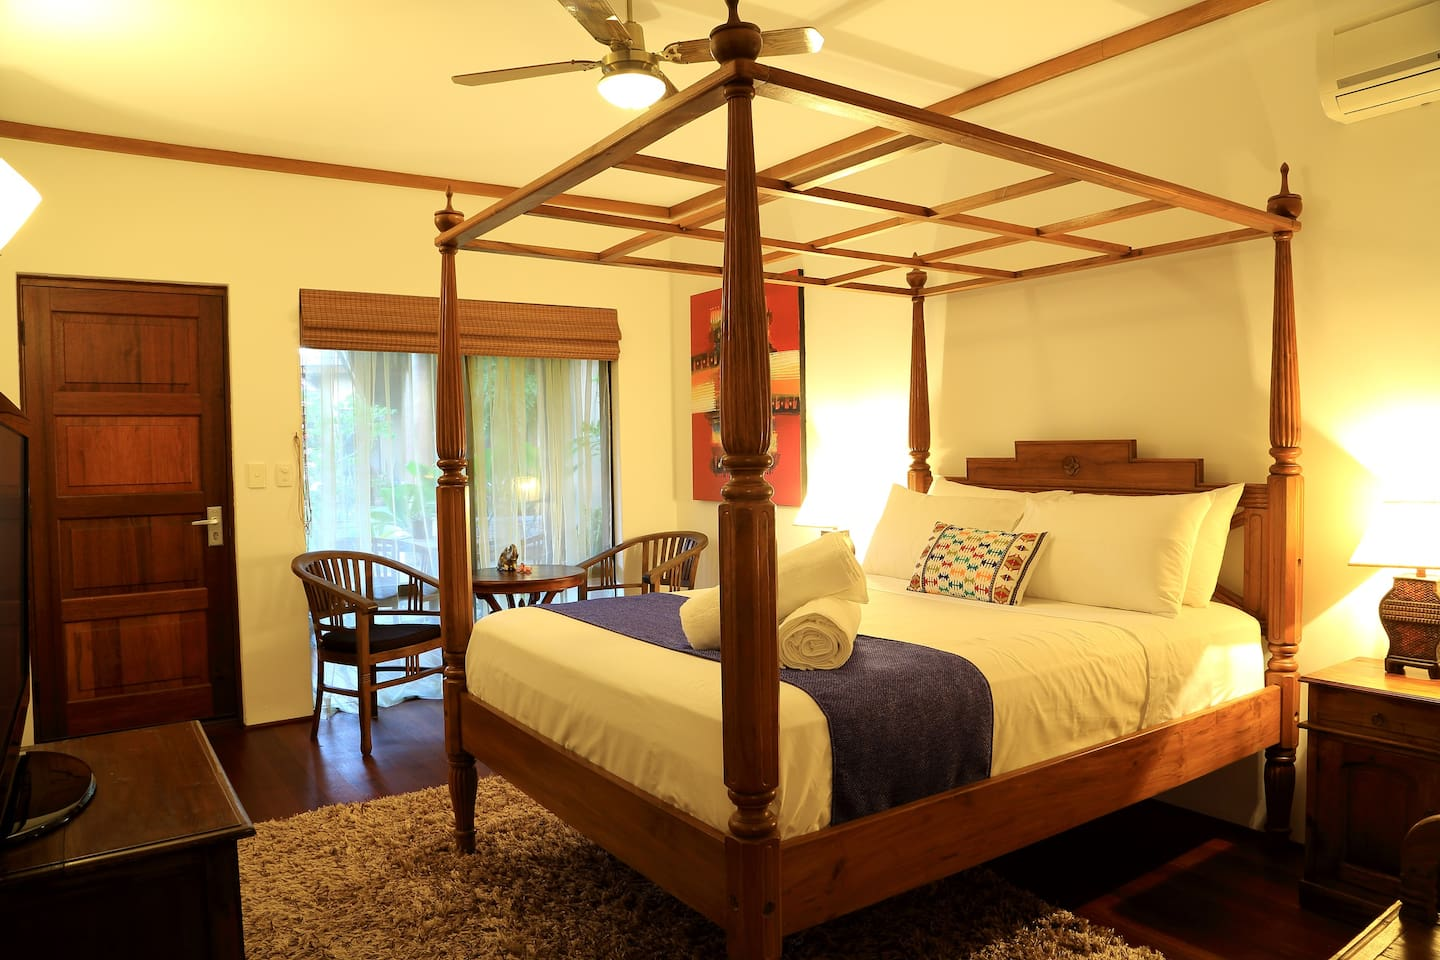 Suite with Queen size four poster bed